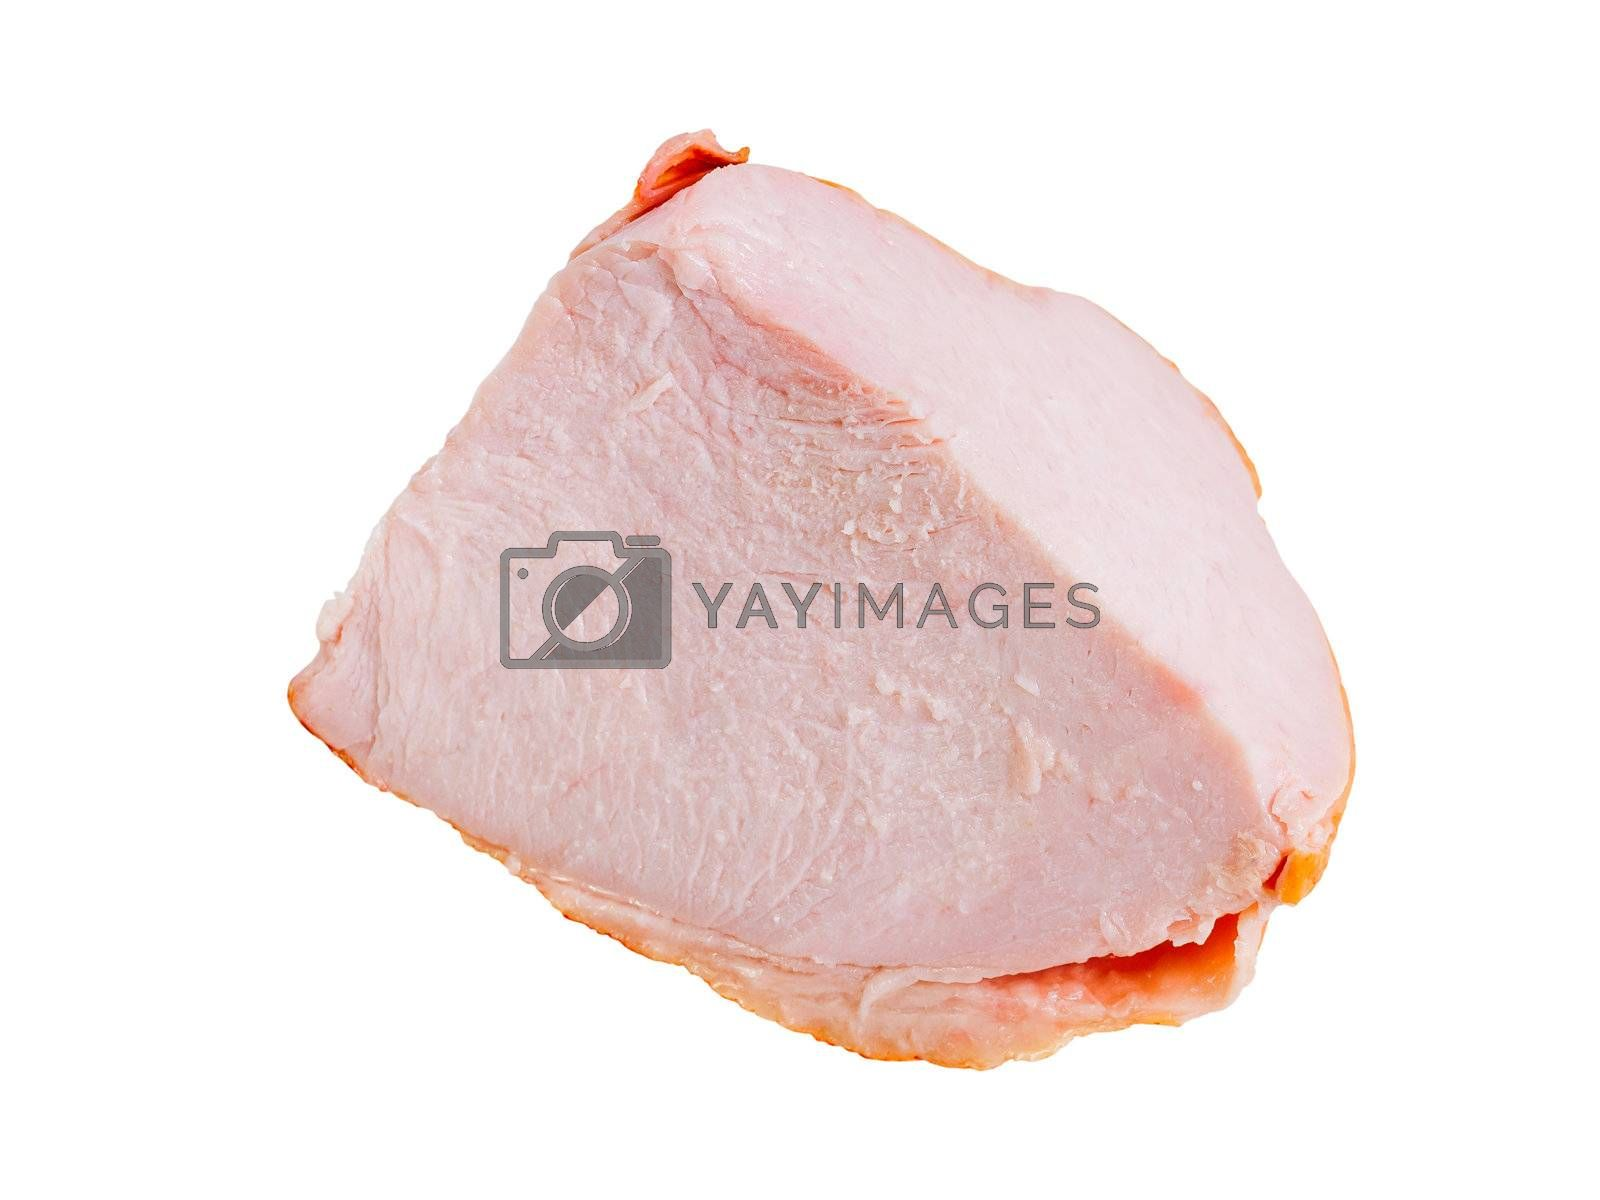 Turkey breast fillet by firewings